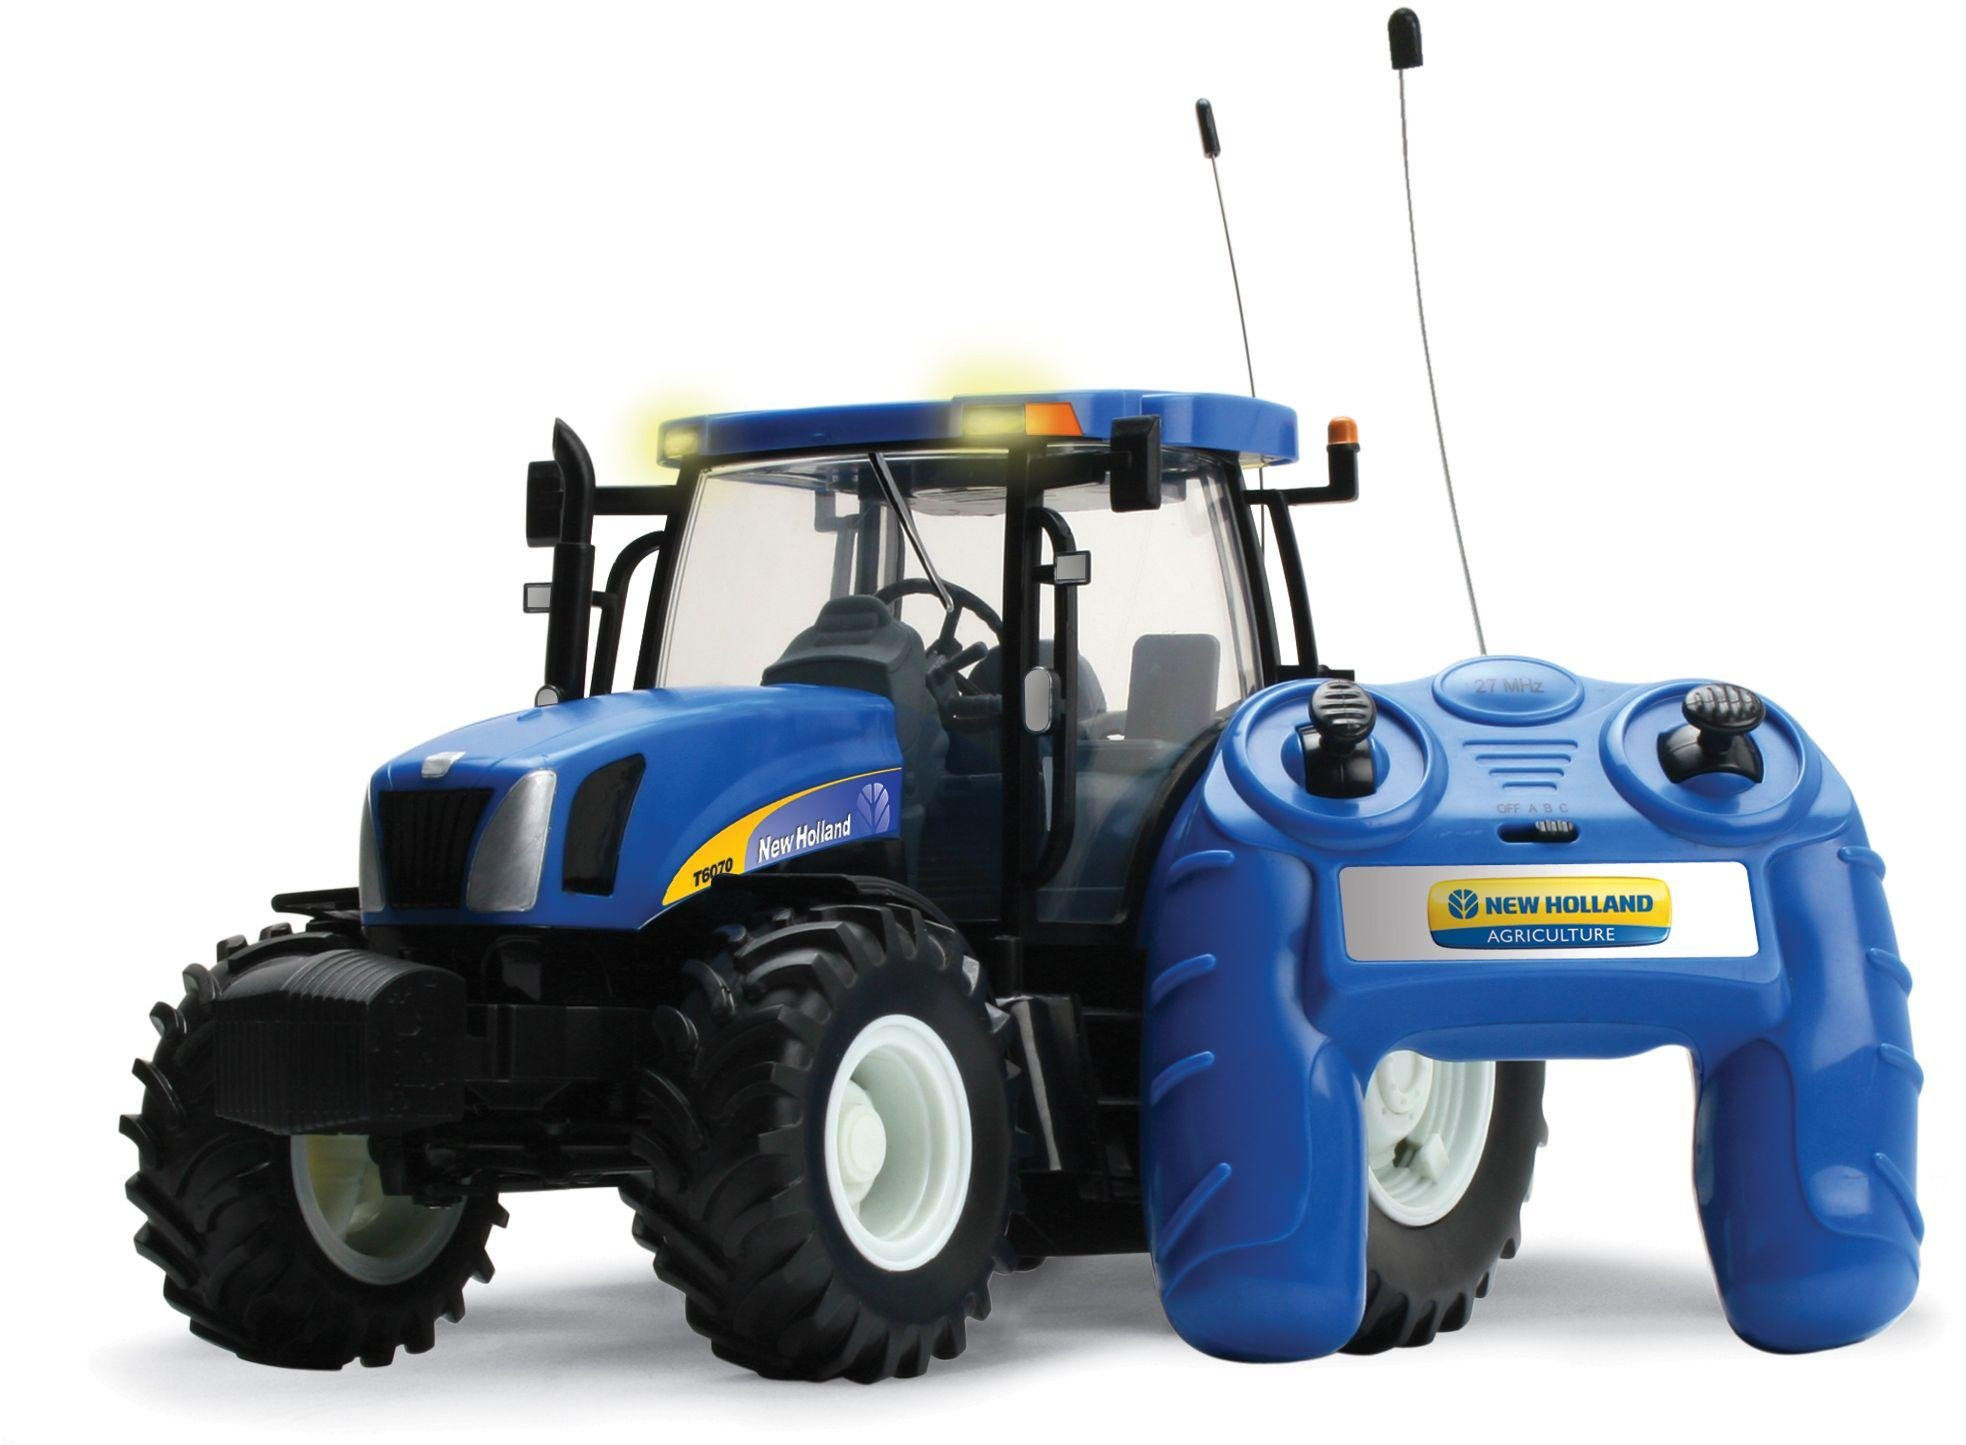 Image of Radio Controlled New Holland T6070 Tractor.